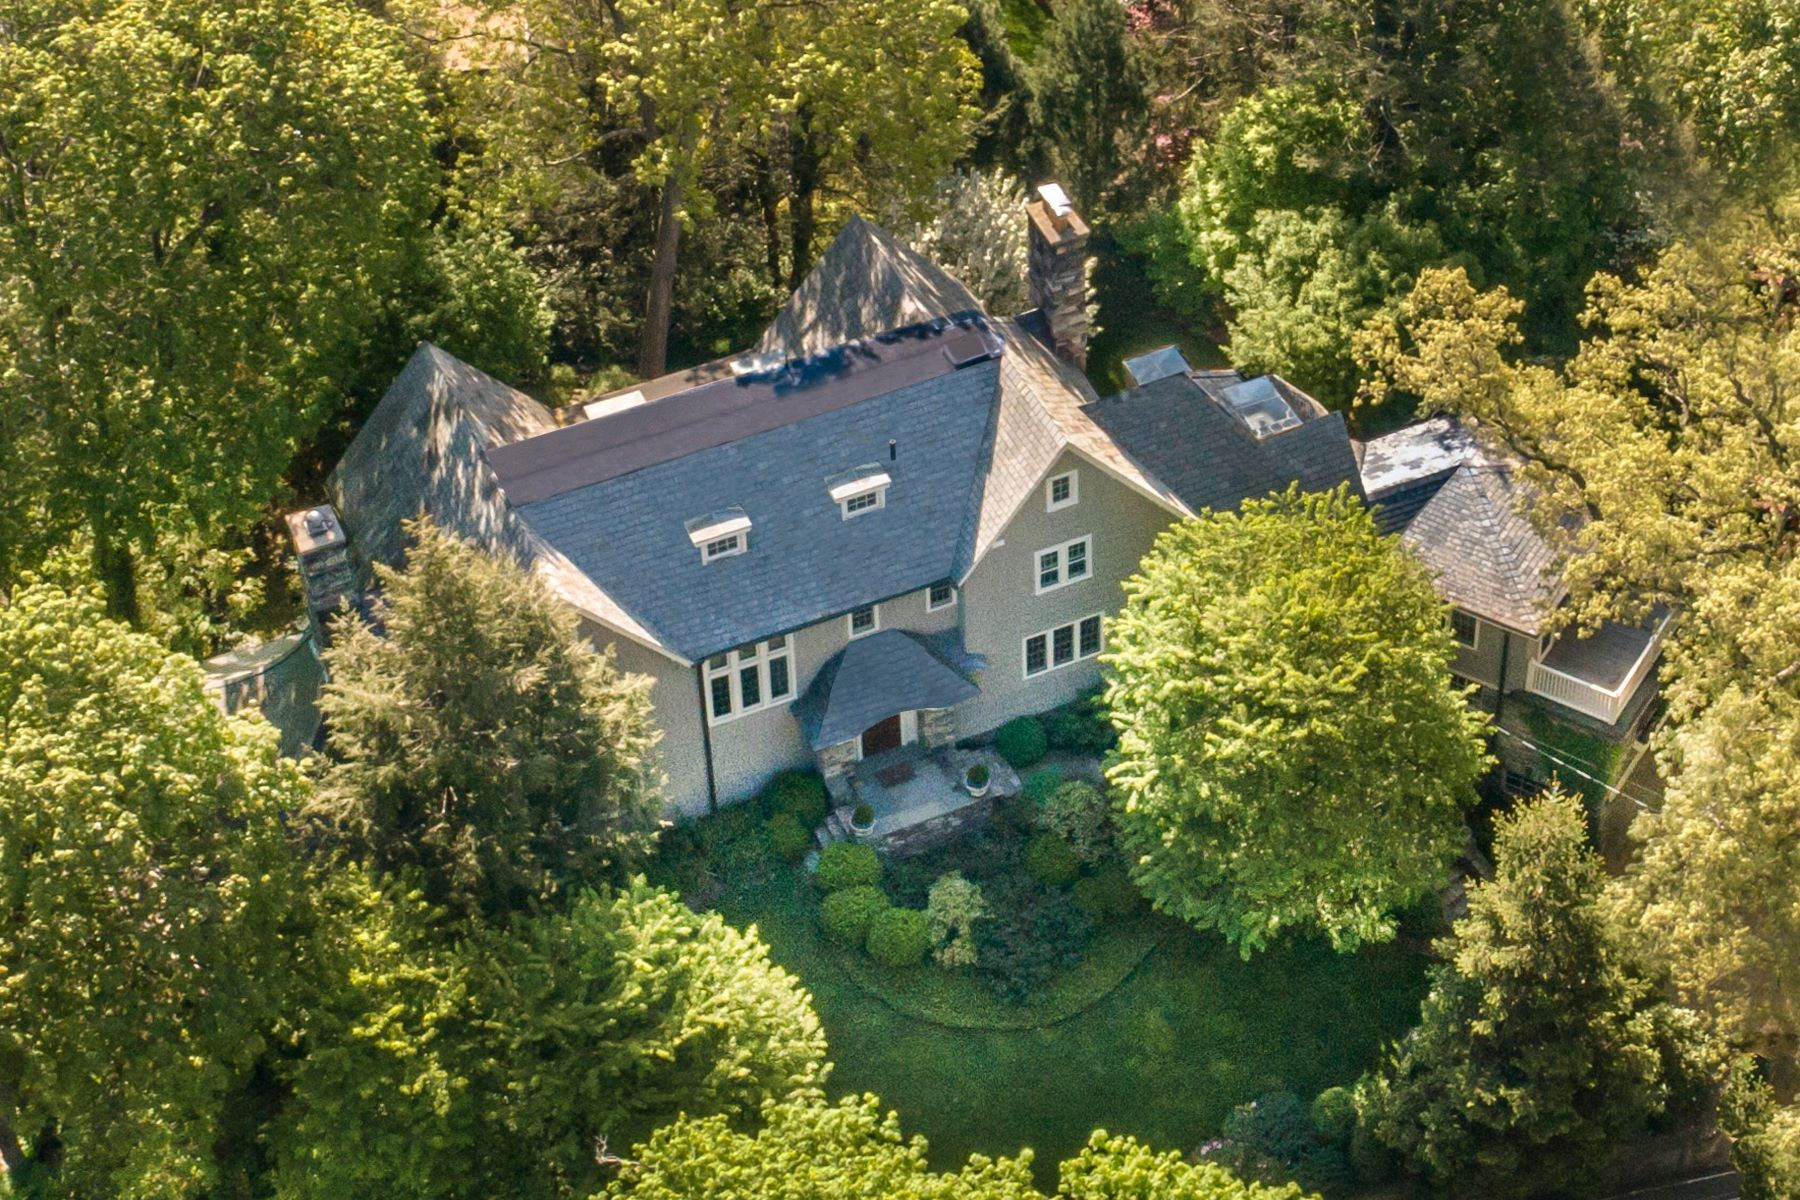 Single Family Home for Sale at Welcome To 6 Northern Avenue 6 Northern Avenue Bronxville, New York 10708 United States